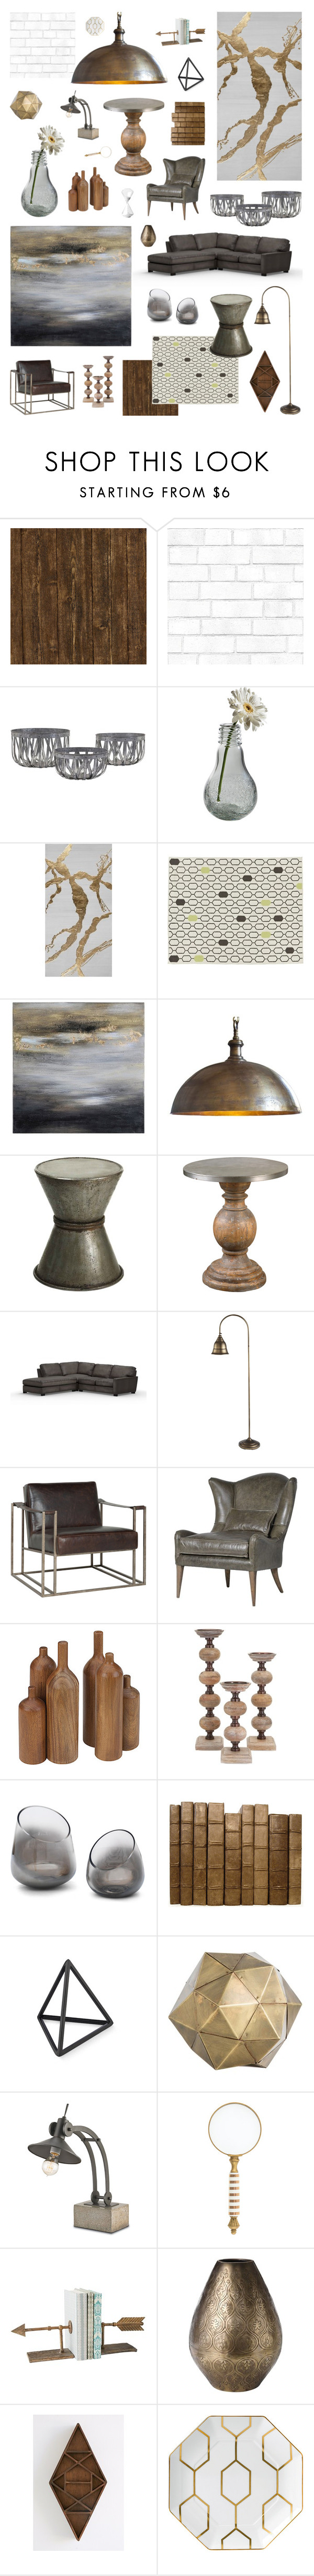 """""""industrial chic"""" by crystalliora ❤ liked on Polyvore featuring interior, interiors, interior design, home, home decor, interior decorating, Tempaper, Dot & Bo, CB2 and Renwil"""